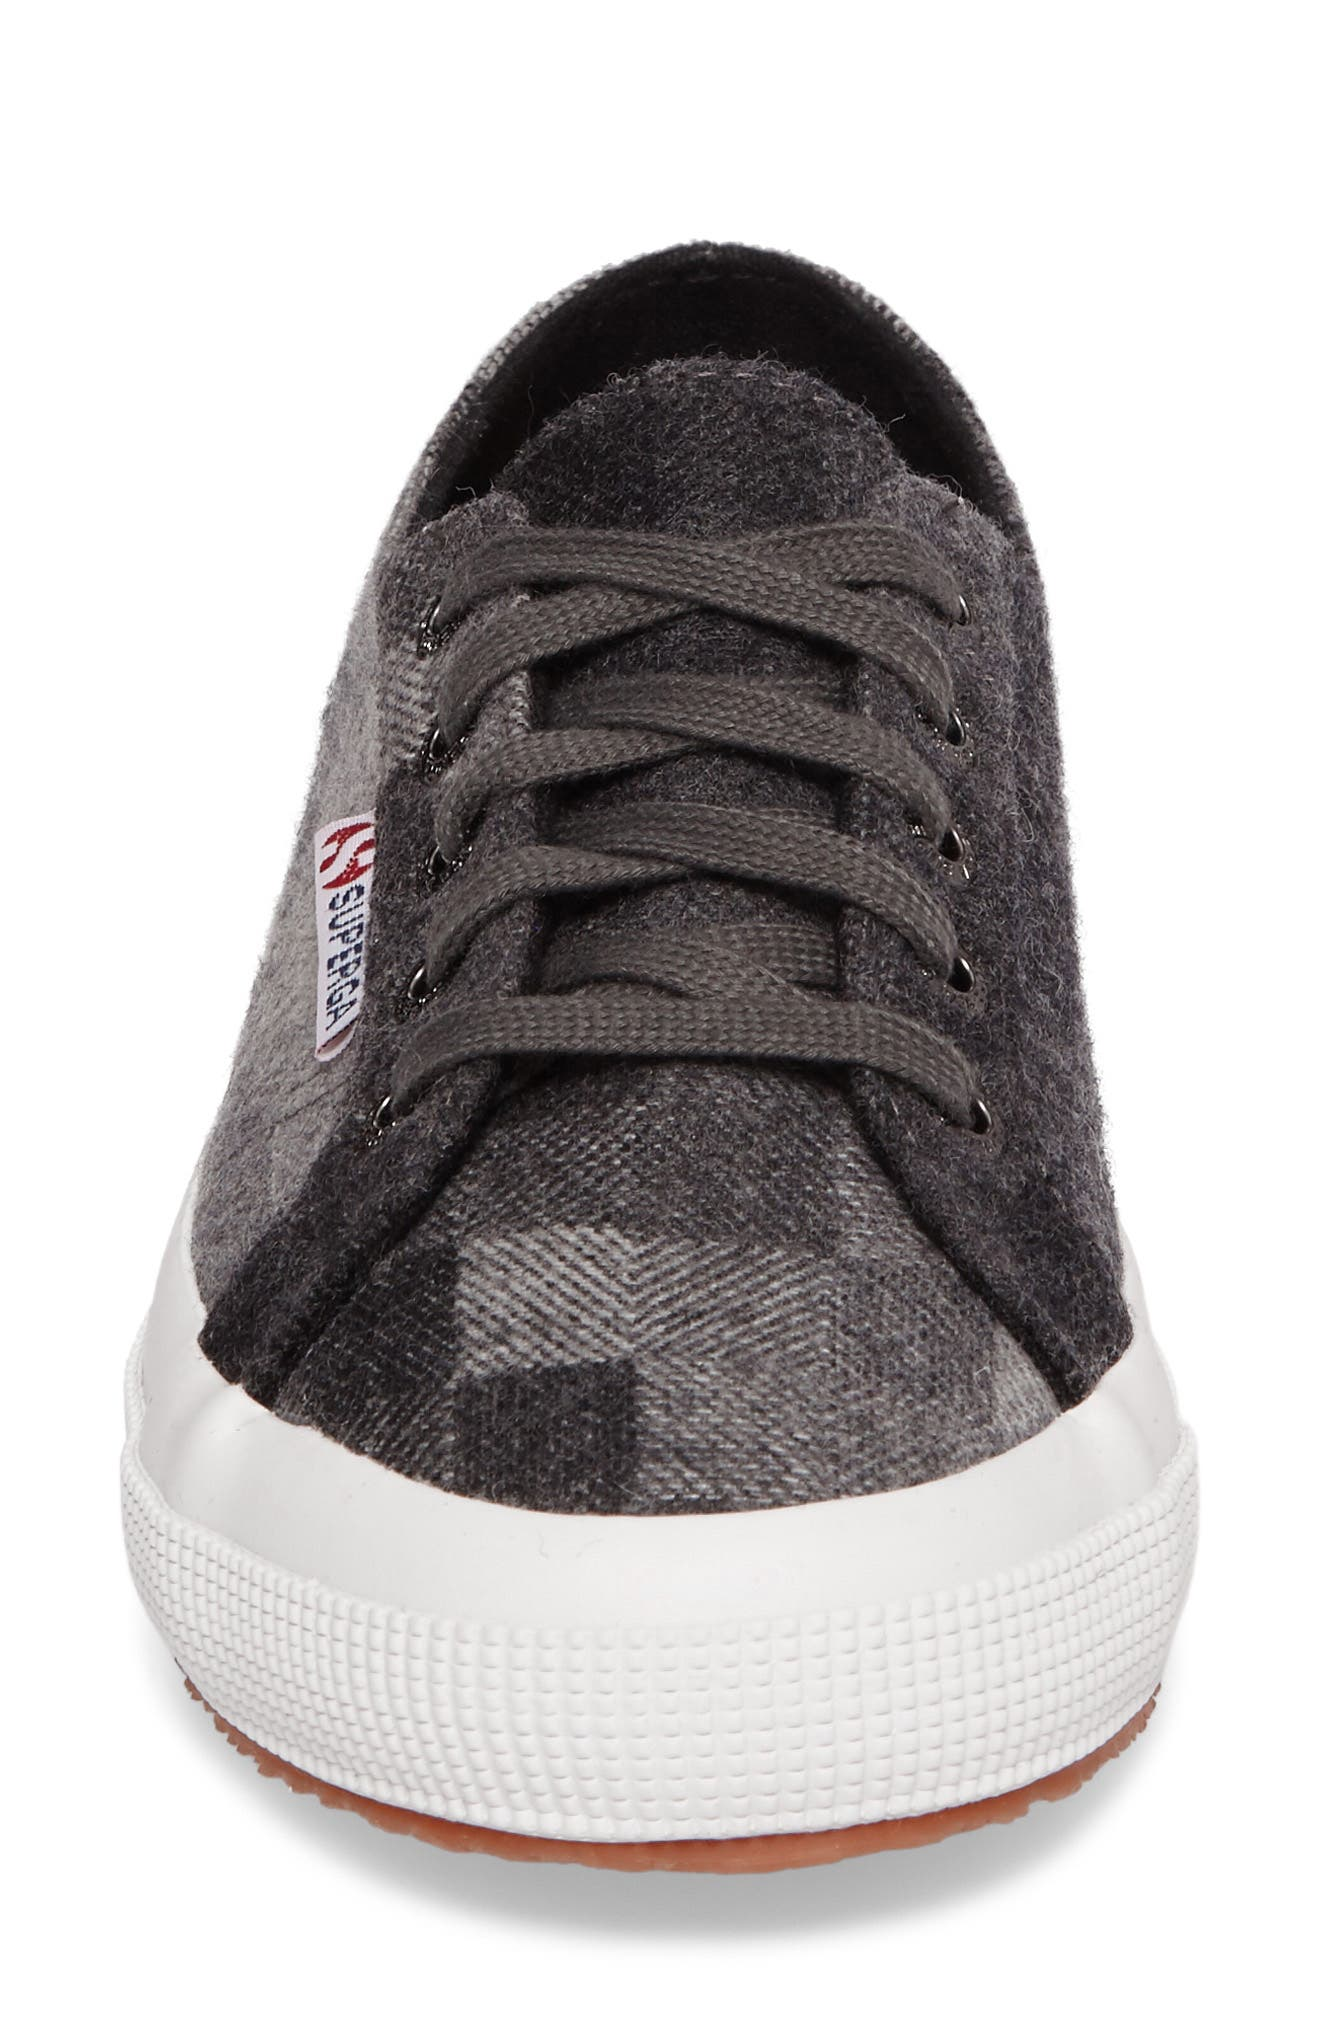 Alternate Image 4  - Superga 'Cotu' Sneaker (Women)